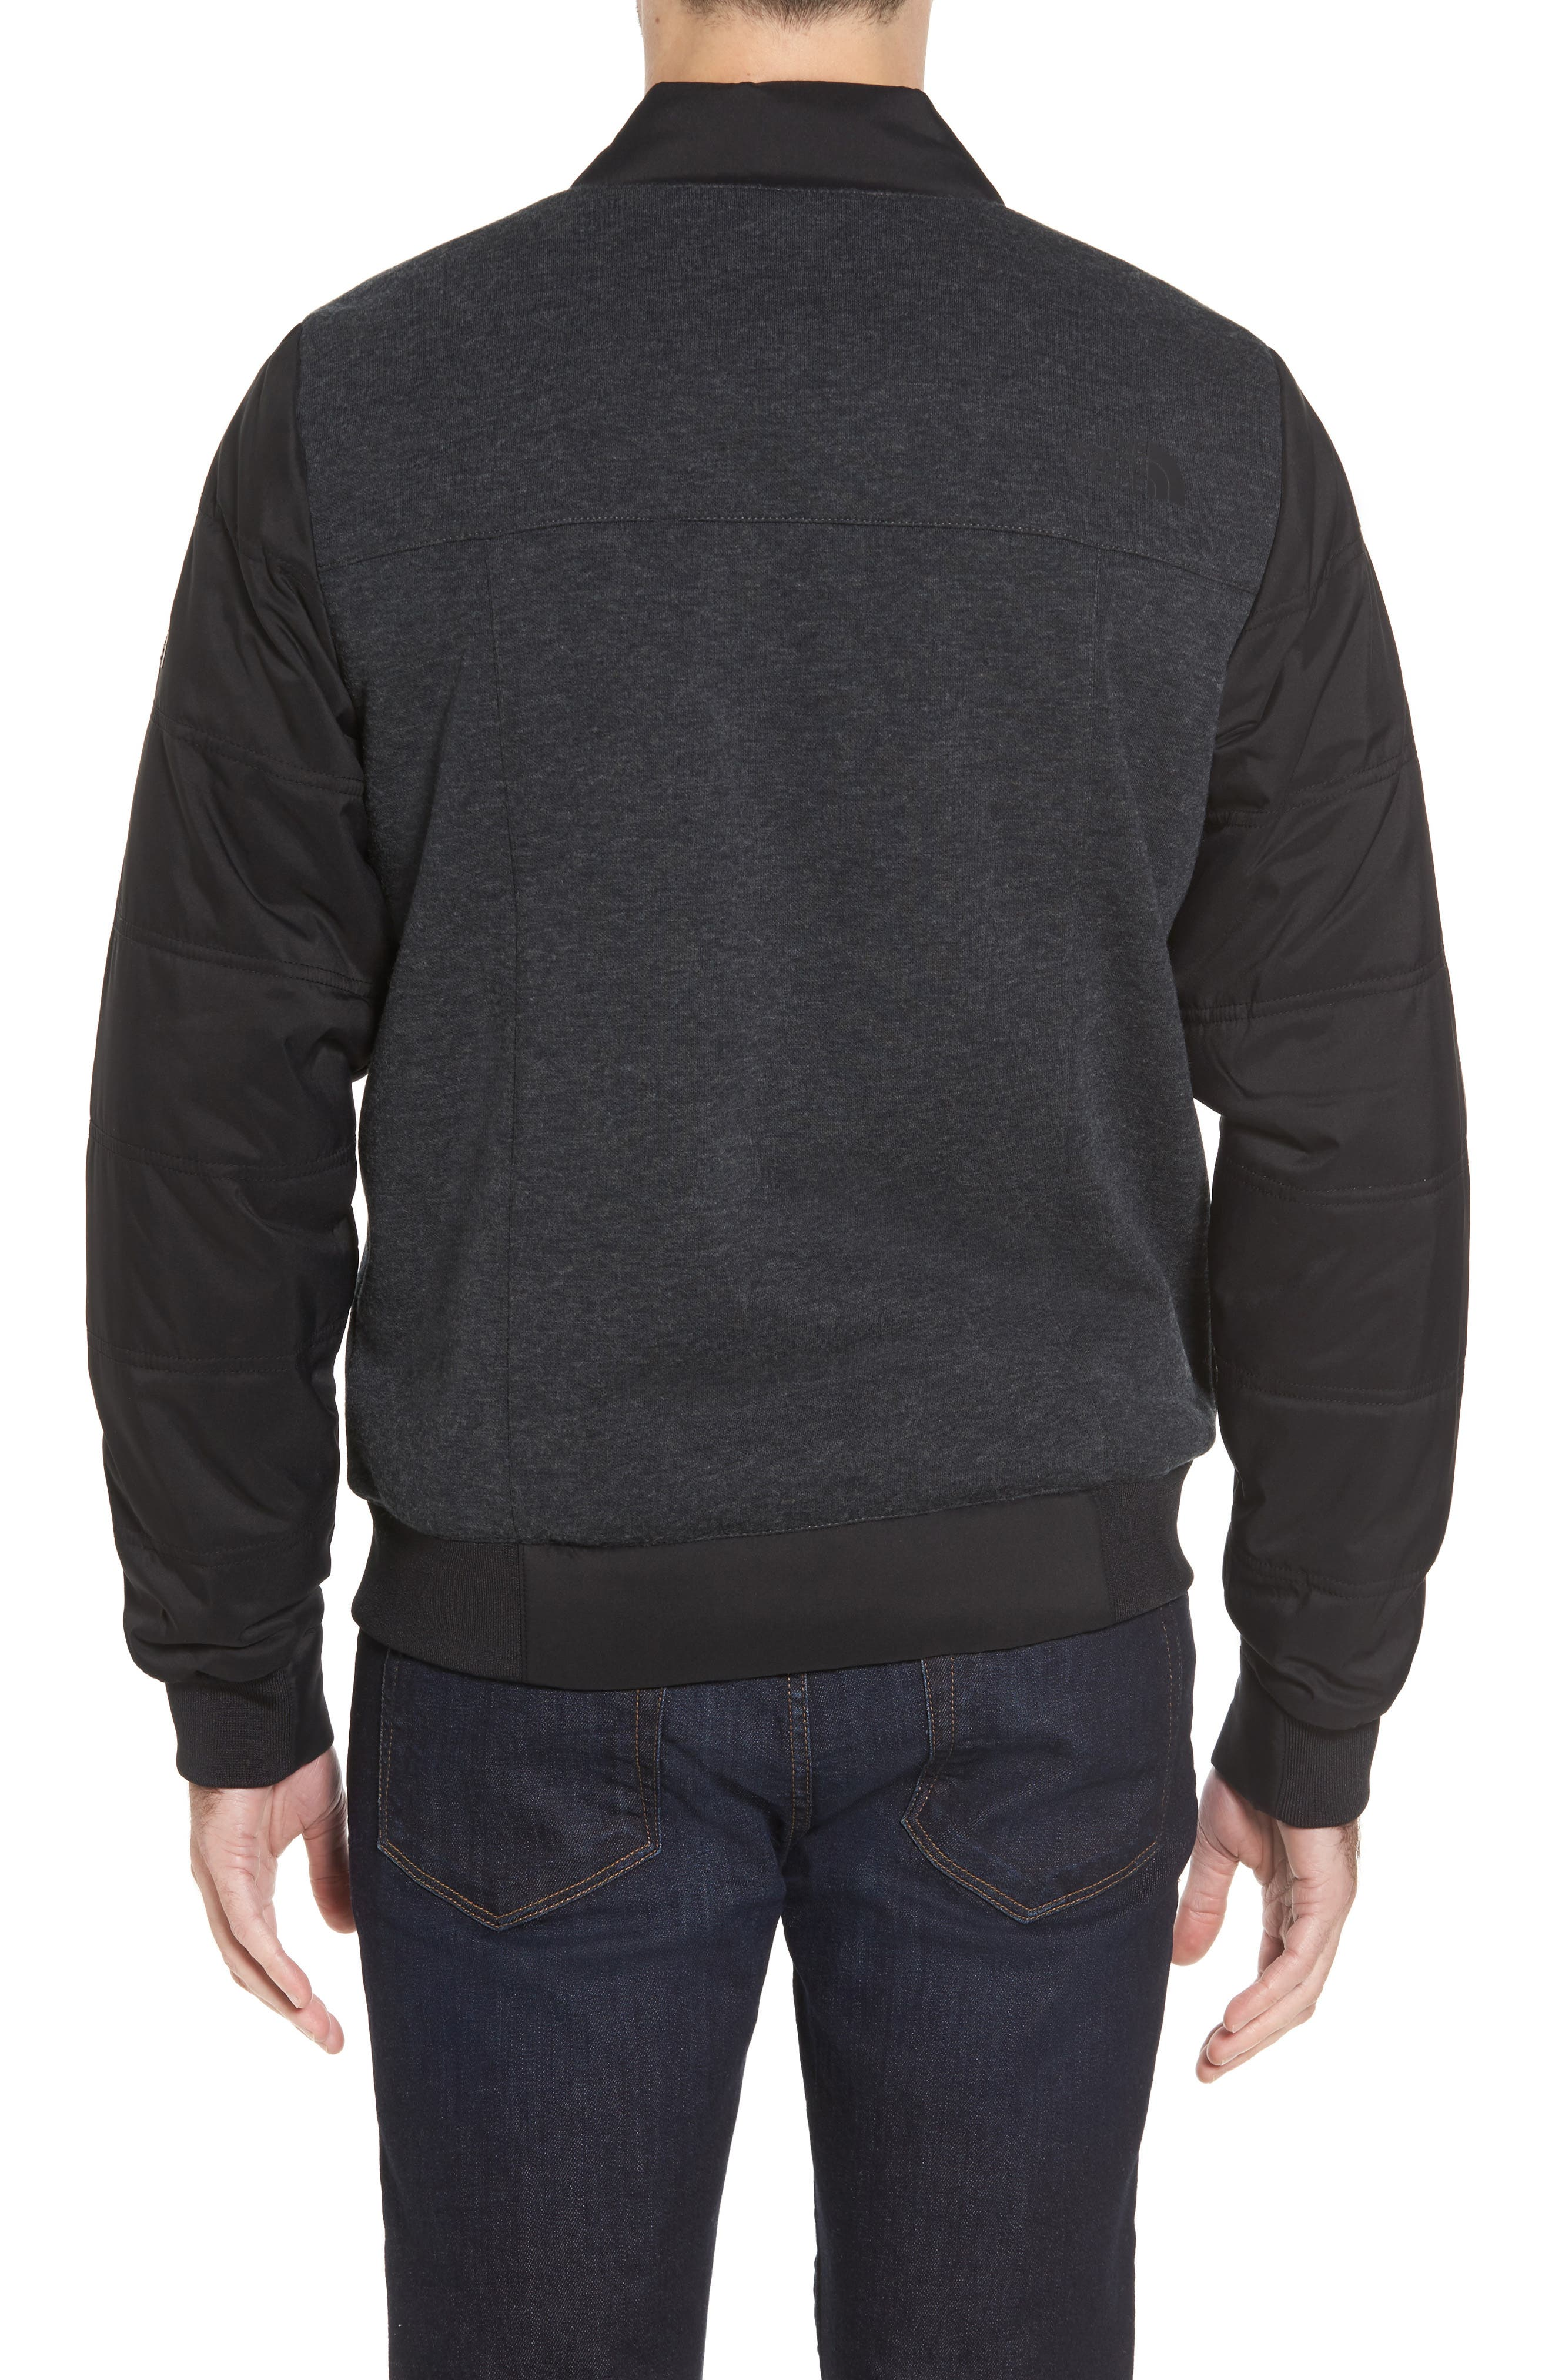 Far Northern Hybrid Bomber Jacket,                             Alternate thumbnail 2, color,                             DARK GREY HEATHER/ BLACK